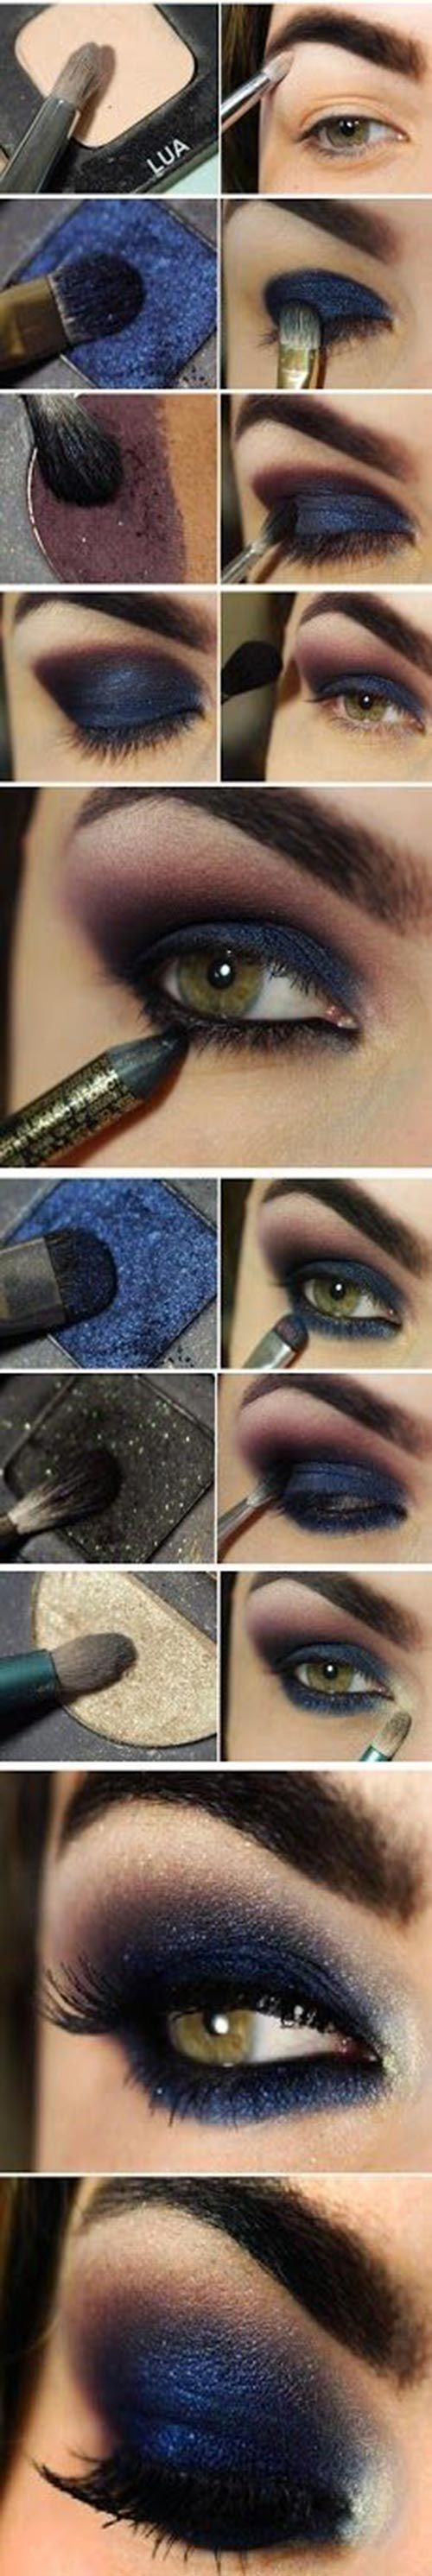 Sexy navy blue smoky eye makeup to dazzle the eve. #feminist #tattoo #womentriangle